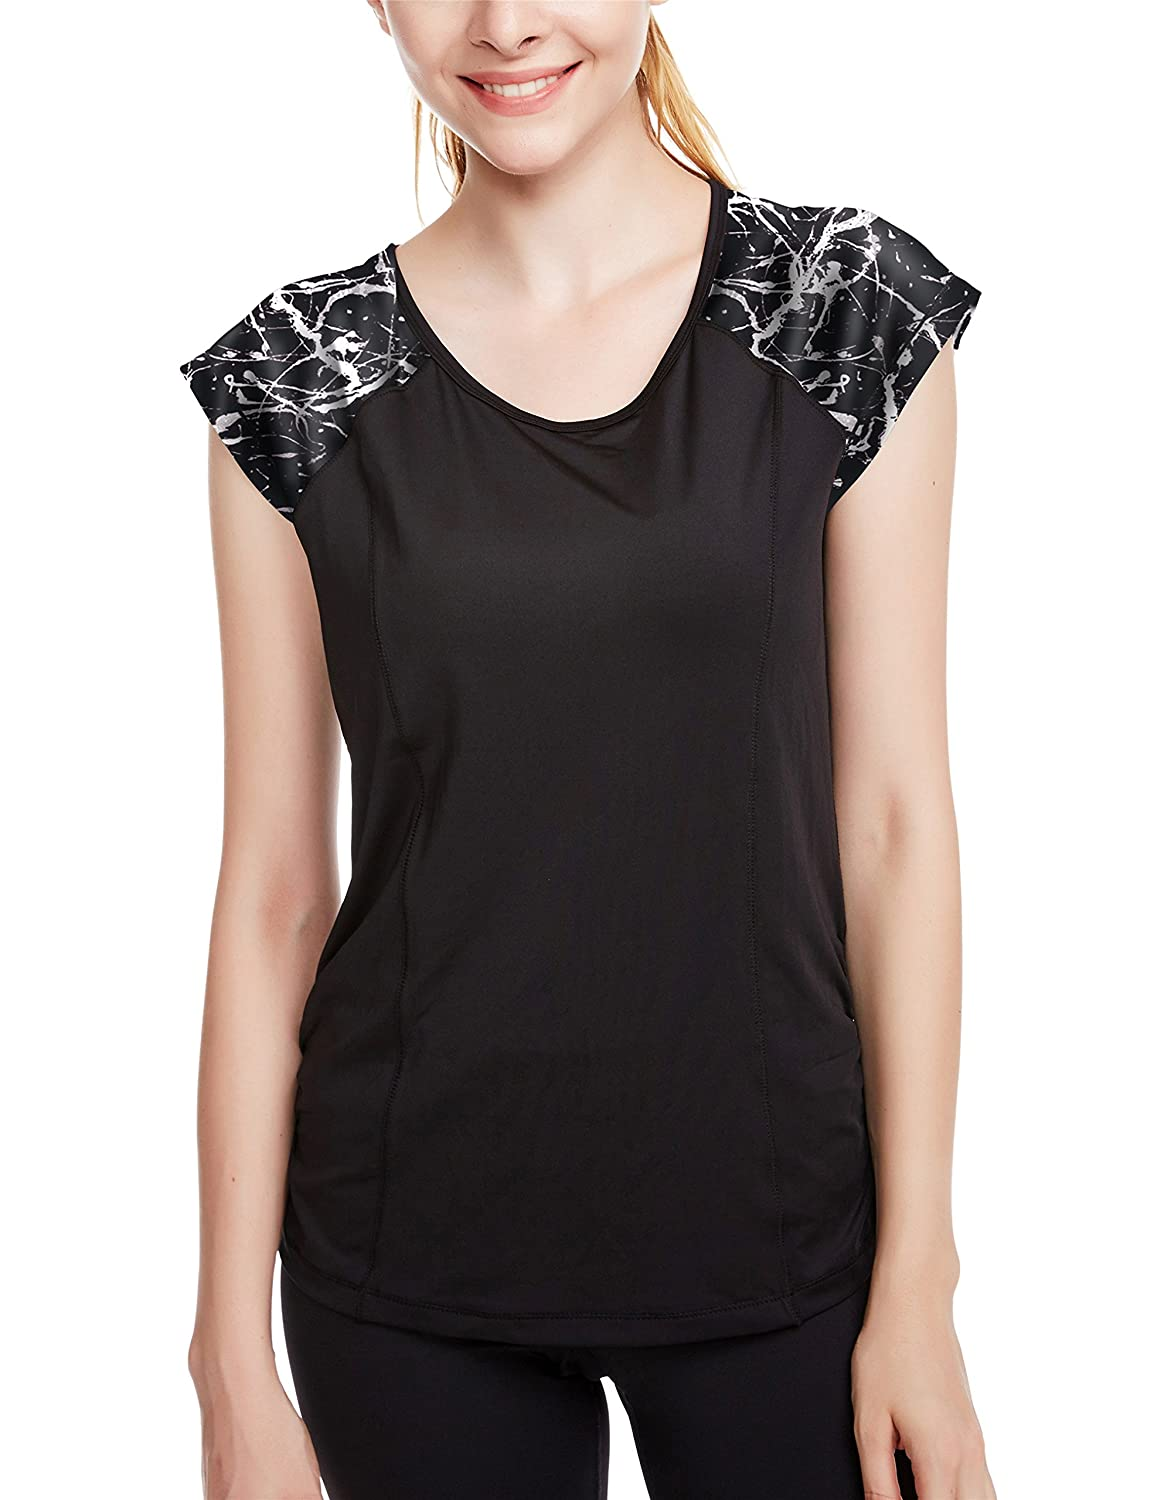 d293ff3e10 icyzone Workout Running Shirts for Women - Fitness Gym Yoga Exercise Short  Sleeve T Shirts Open Back Tops